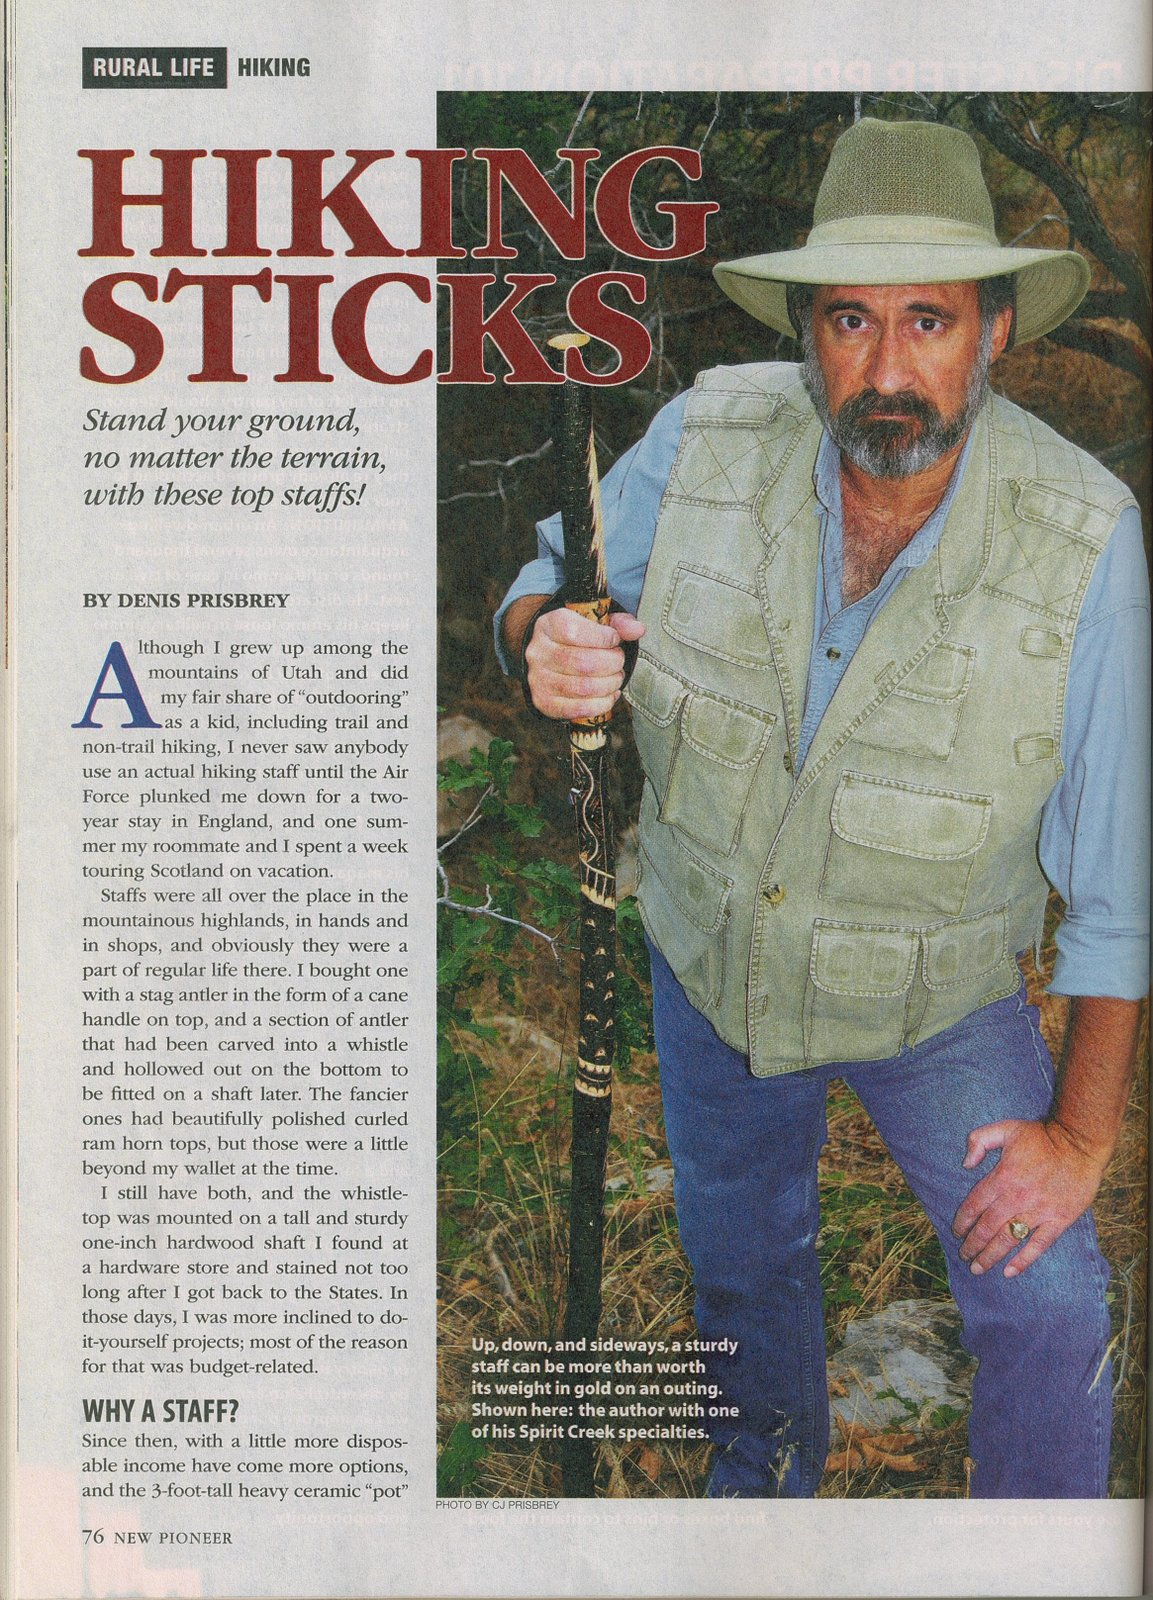 hiking-sticks-page-1.jpg